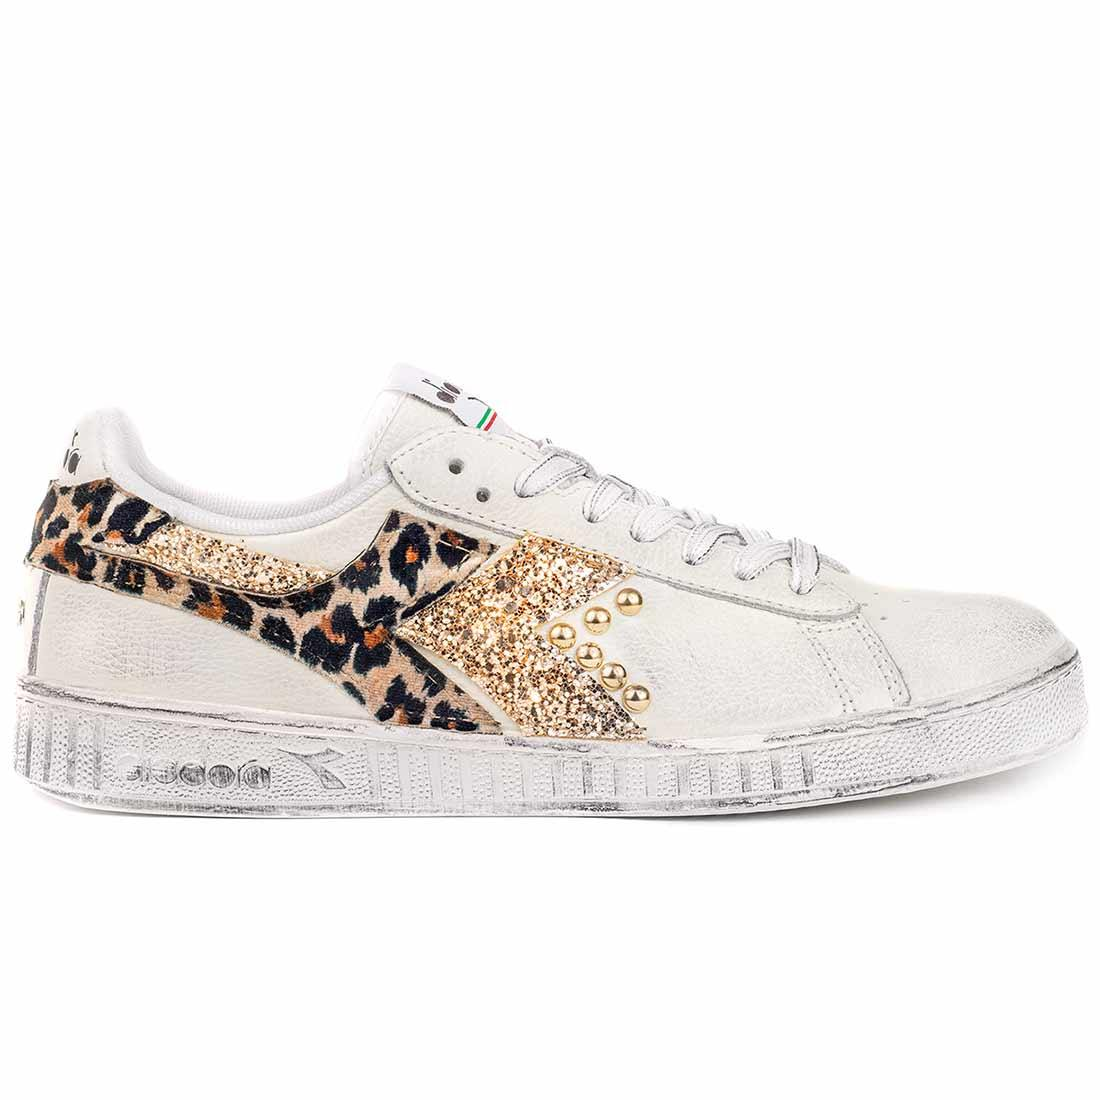 scarpe diadora game low maculate con glitter oro